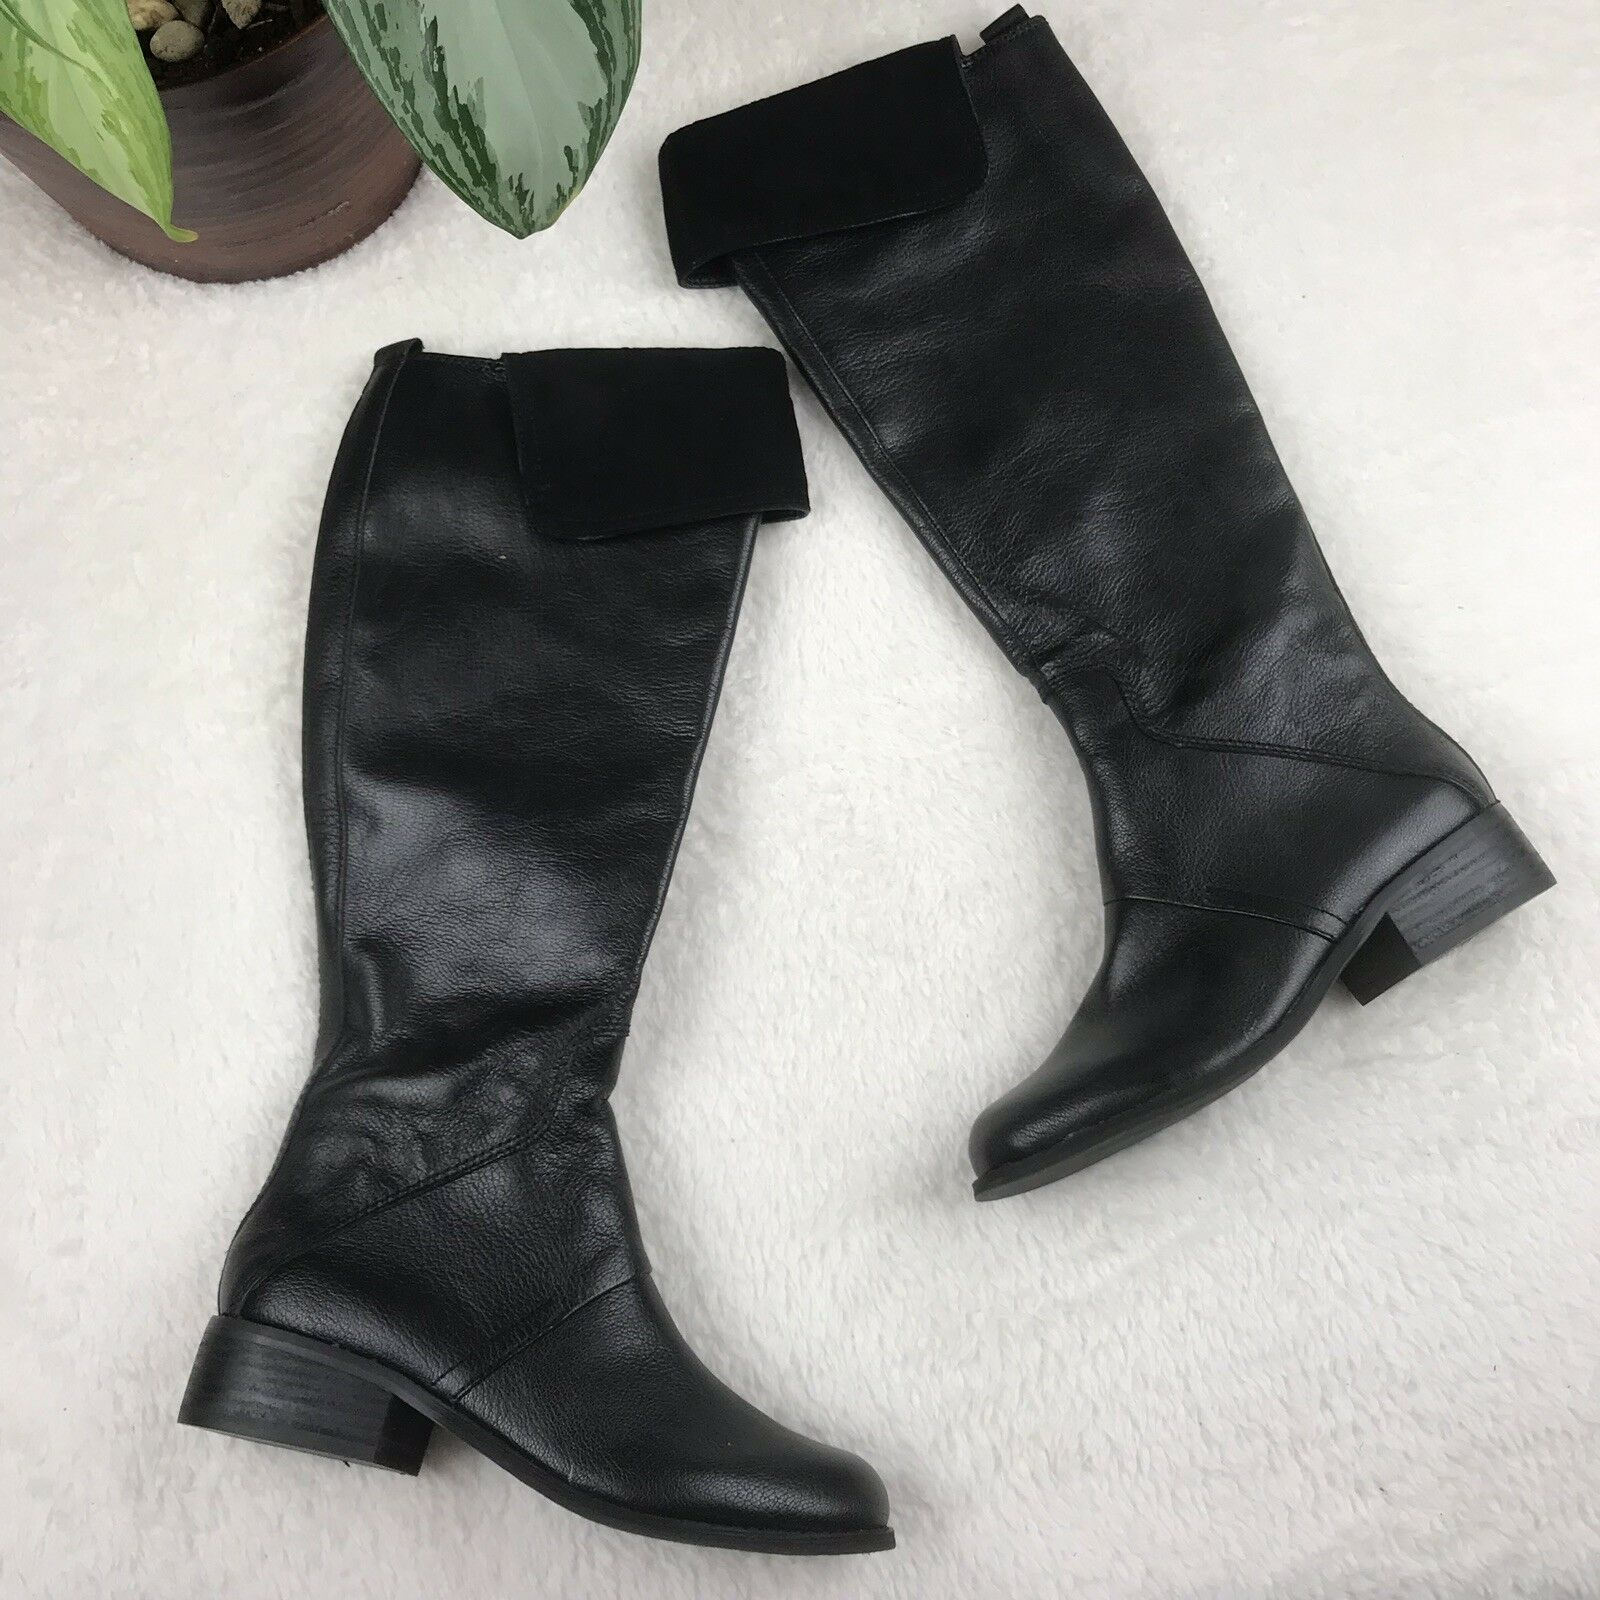 Nine West Black Noriko Knee High Leather Riding Boots Boots Boots Women's Size 5 305566